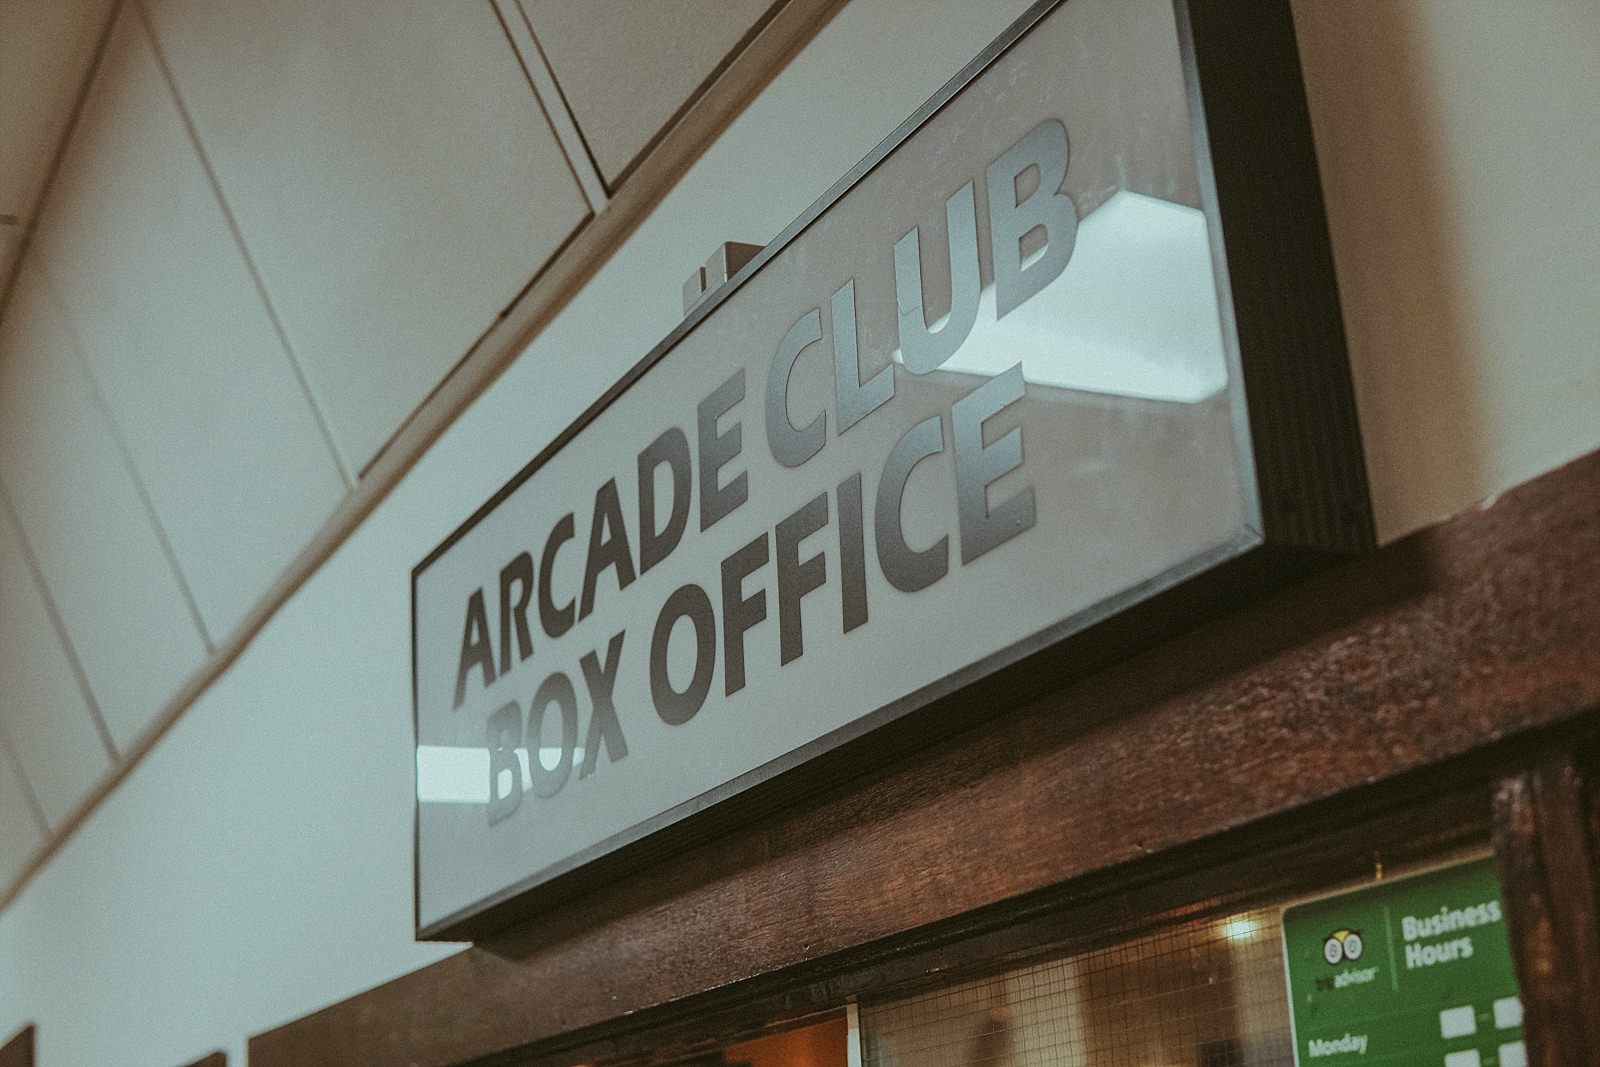 arcade box office sign